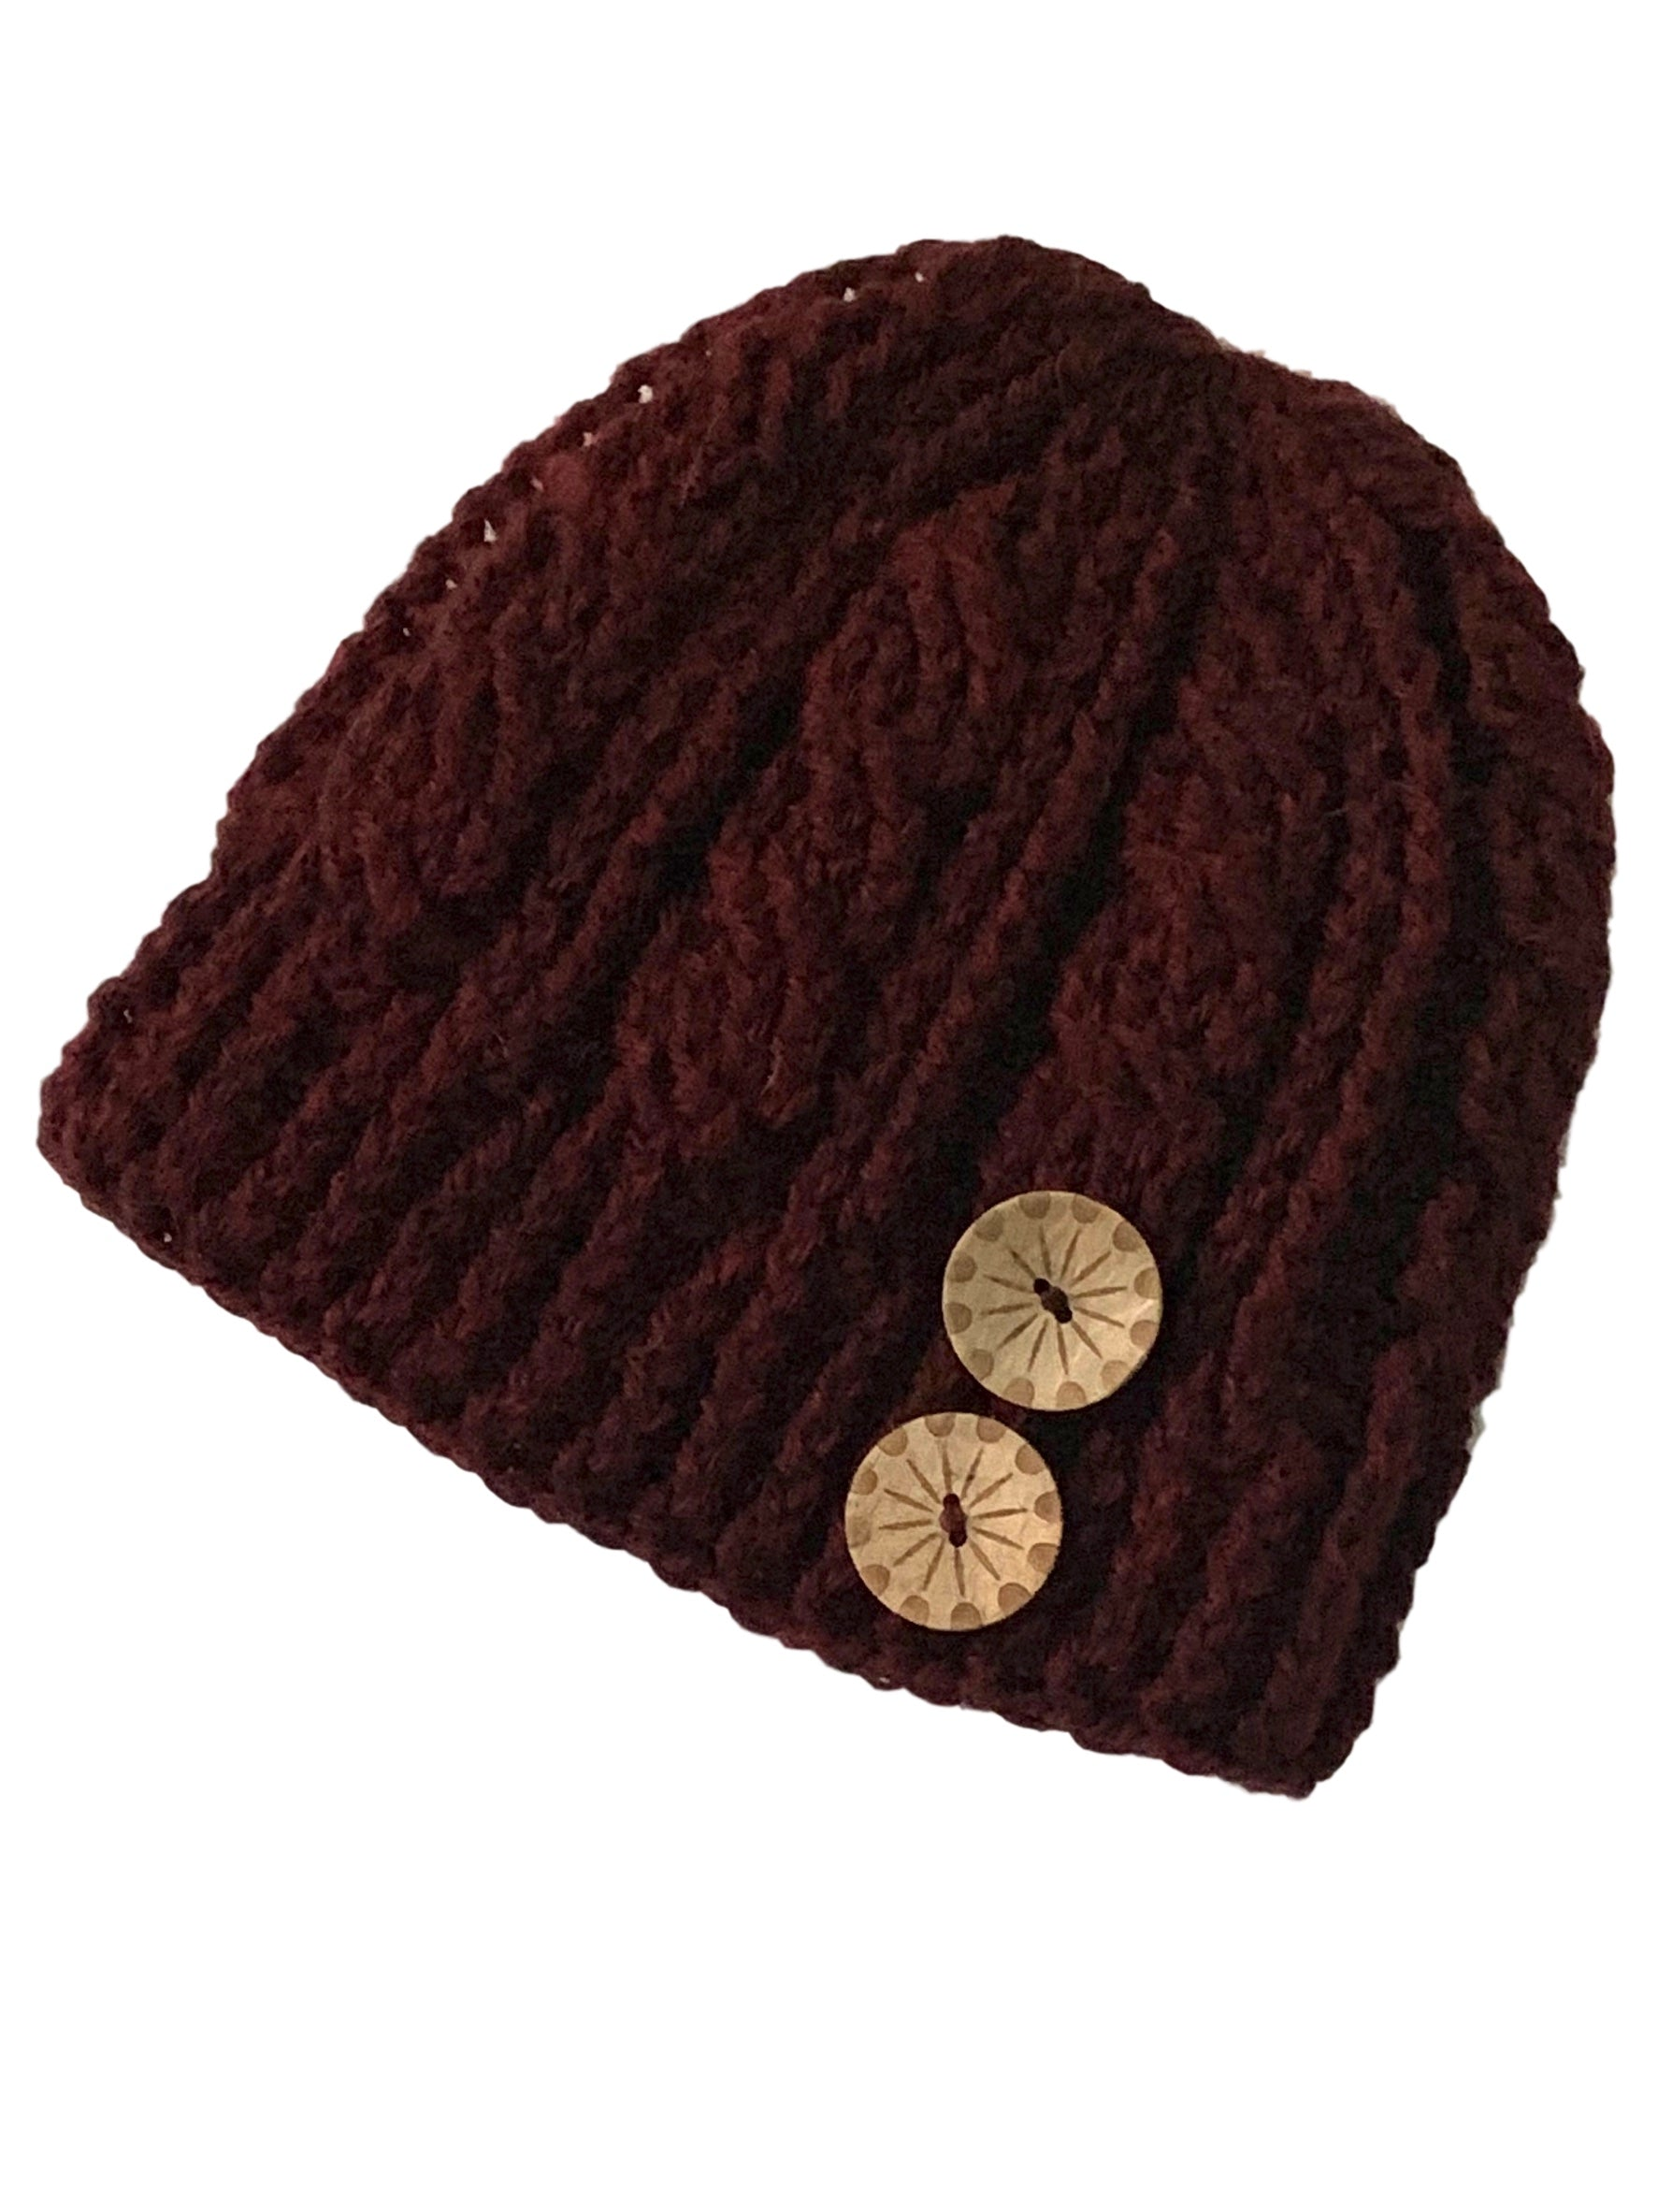 Cabernet - Crochet Beanie Hat with Eco Artisan Button Accent